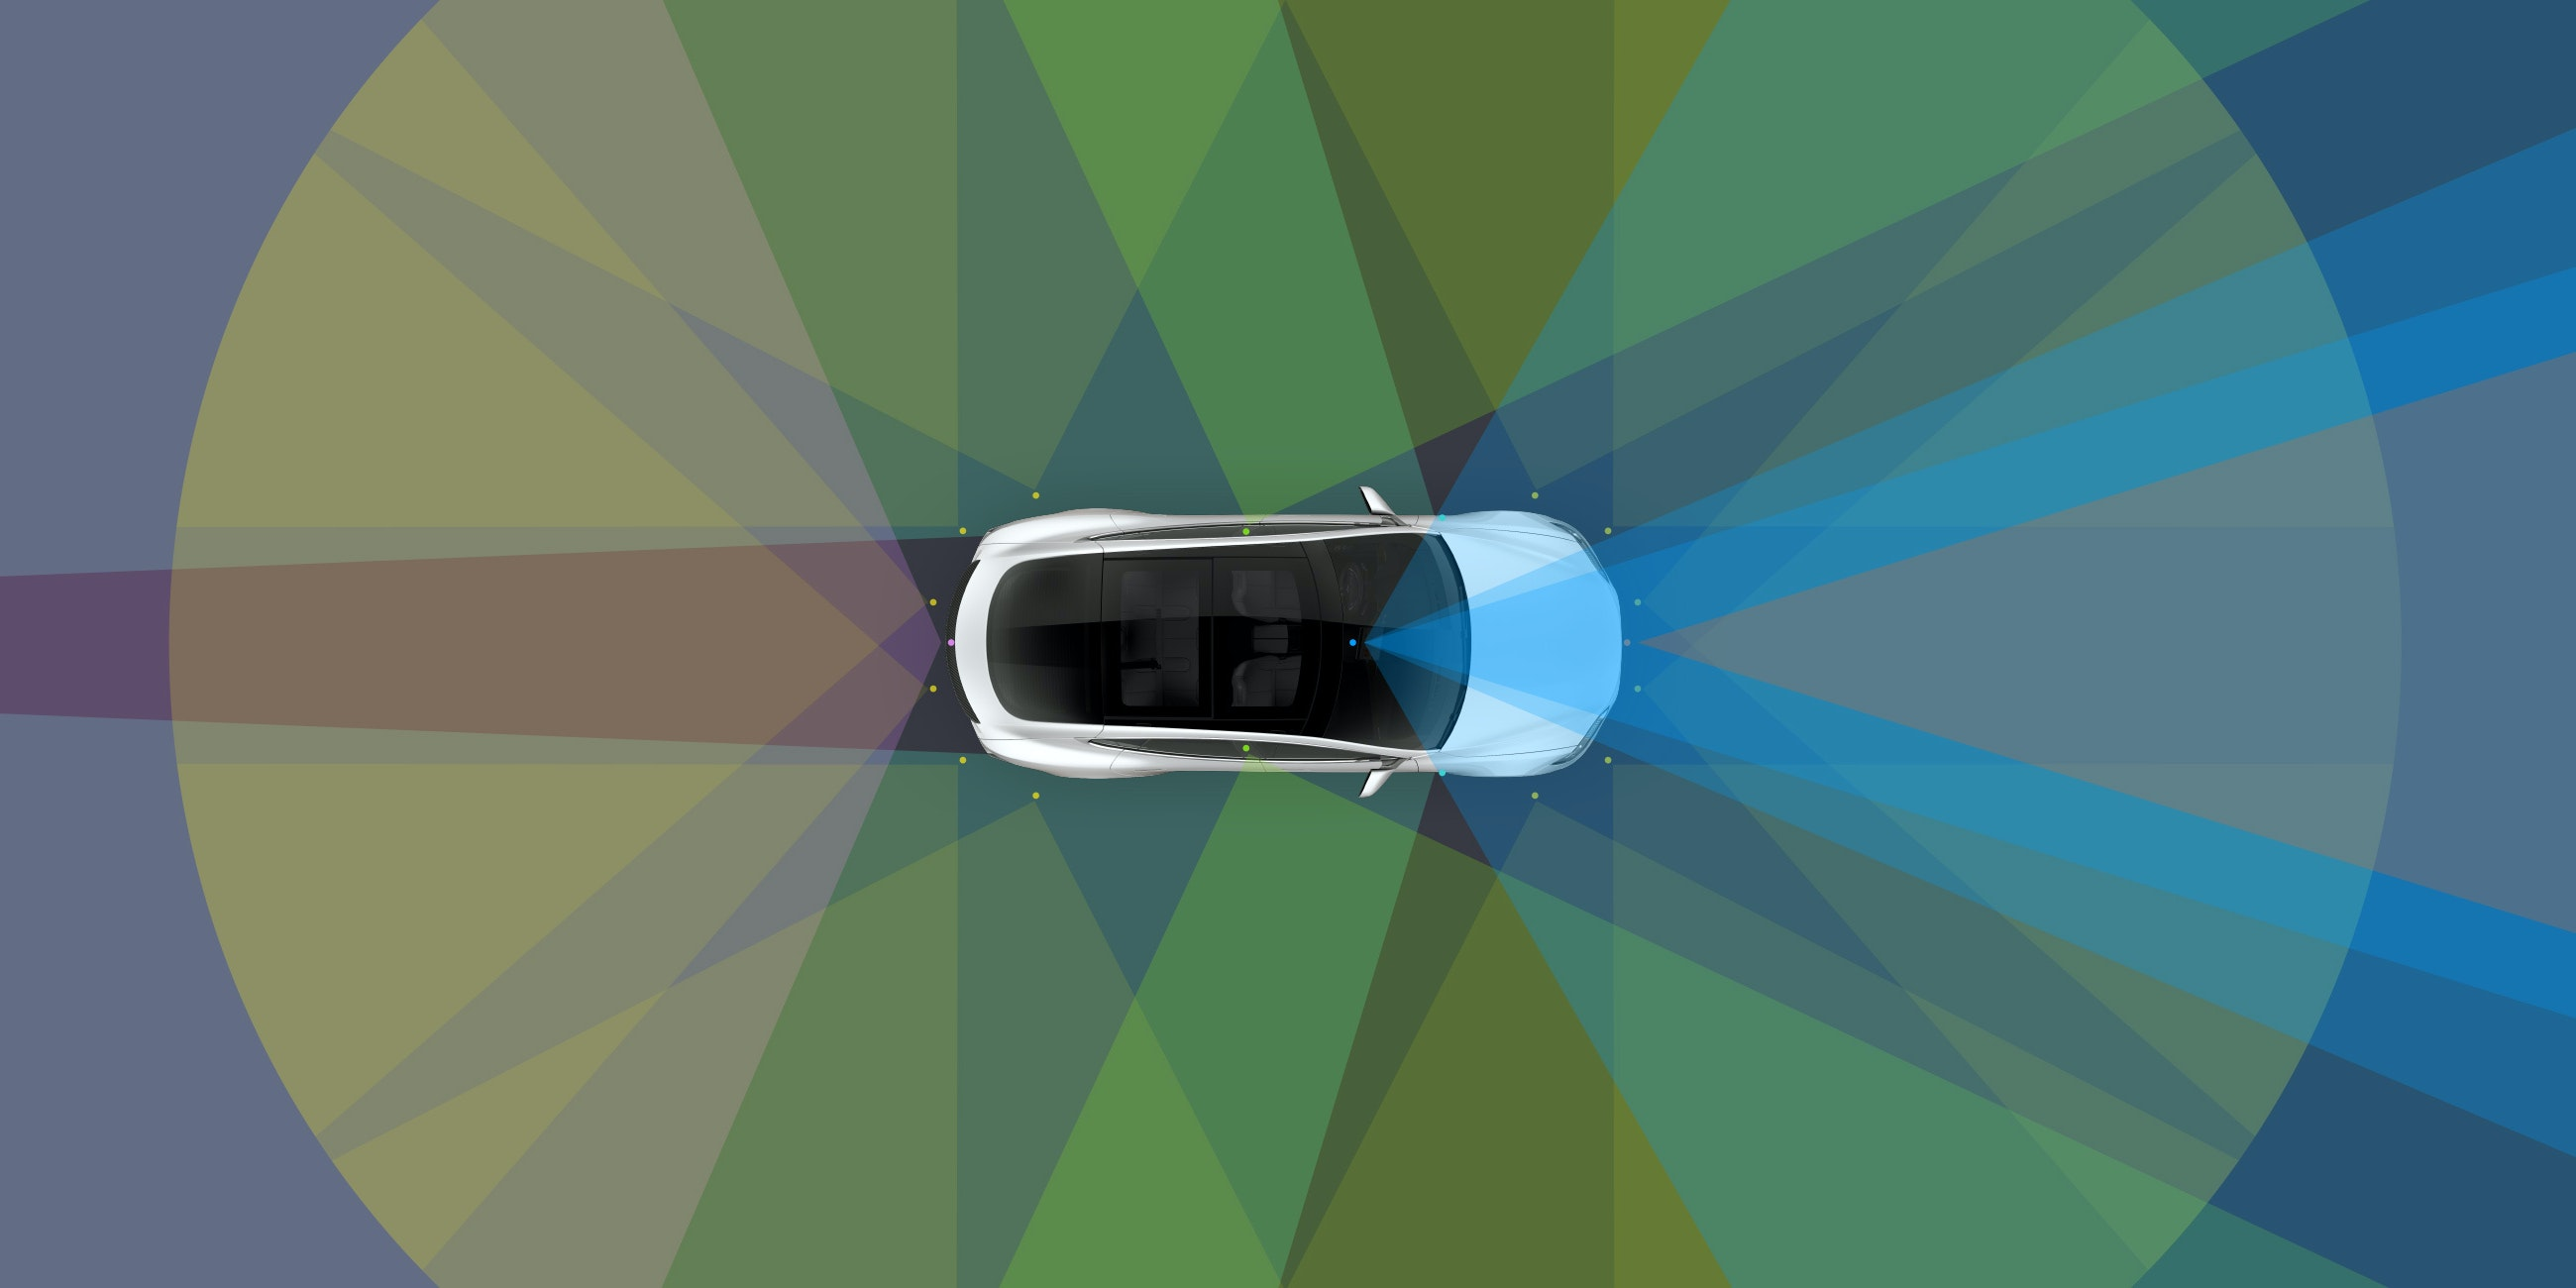 Full autonomy is standard in all Tesla cars from now on.